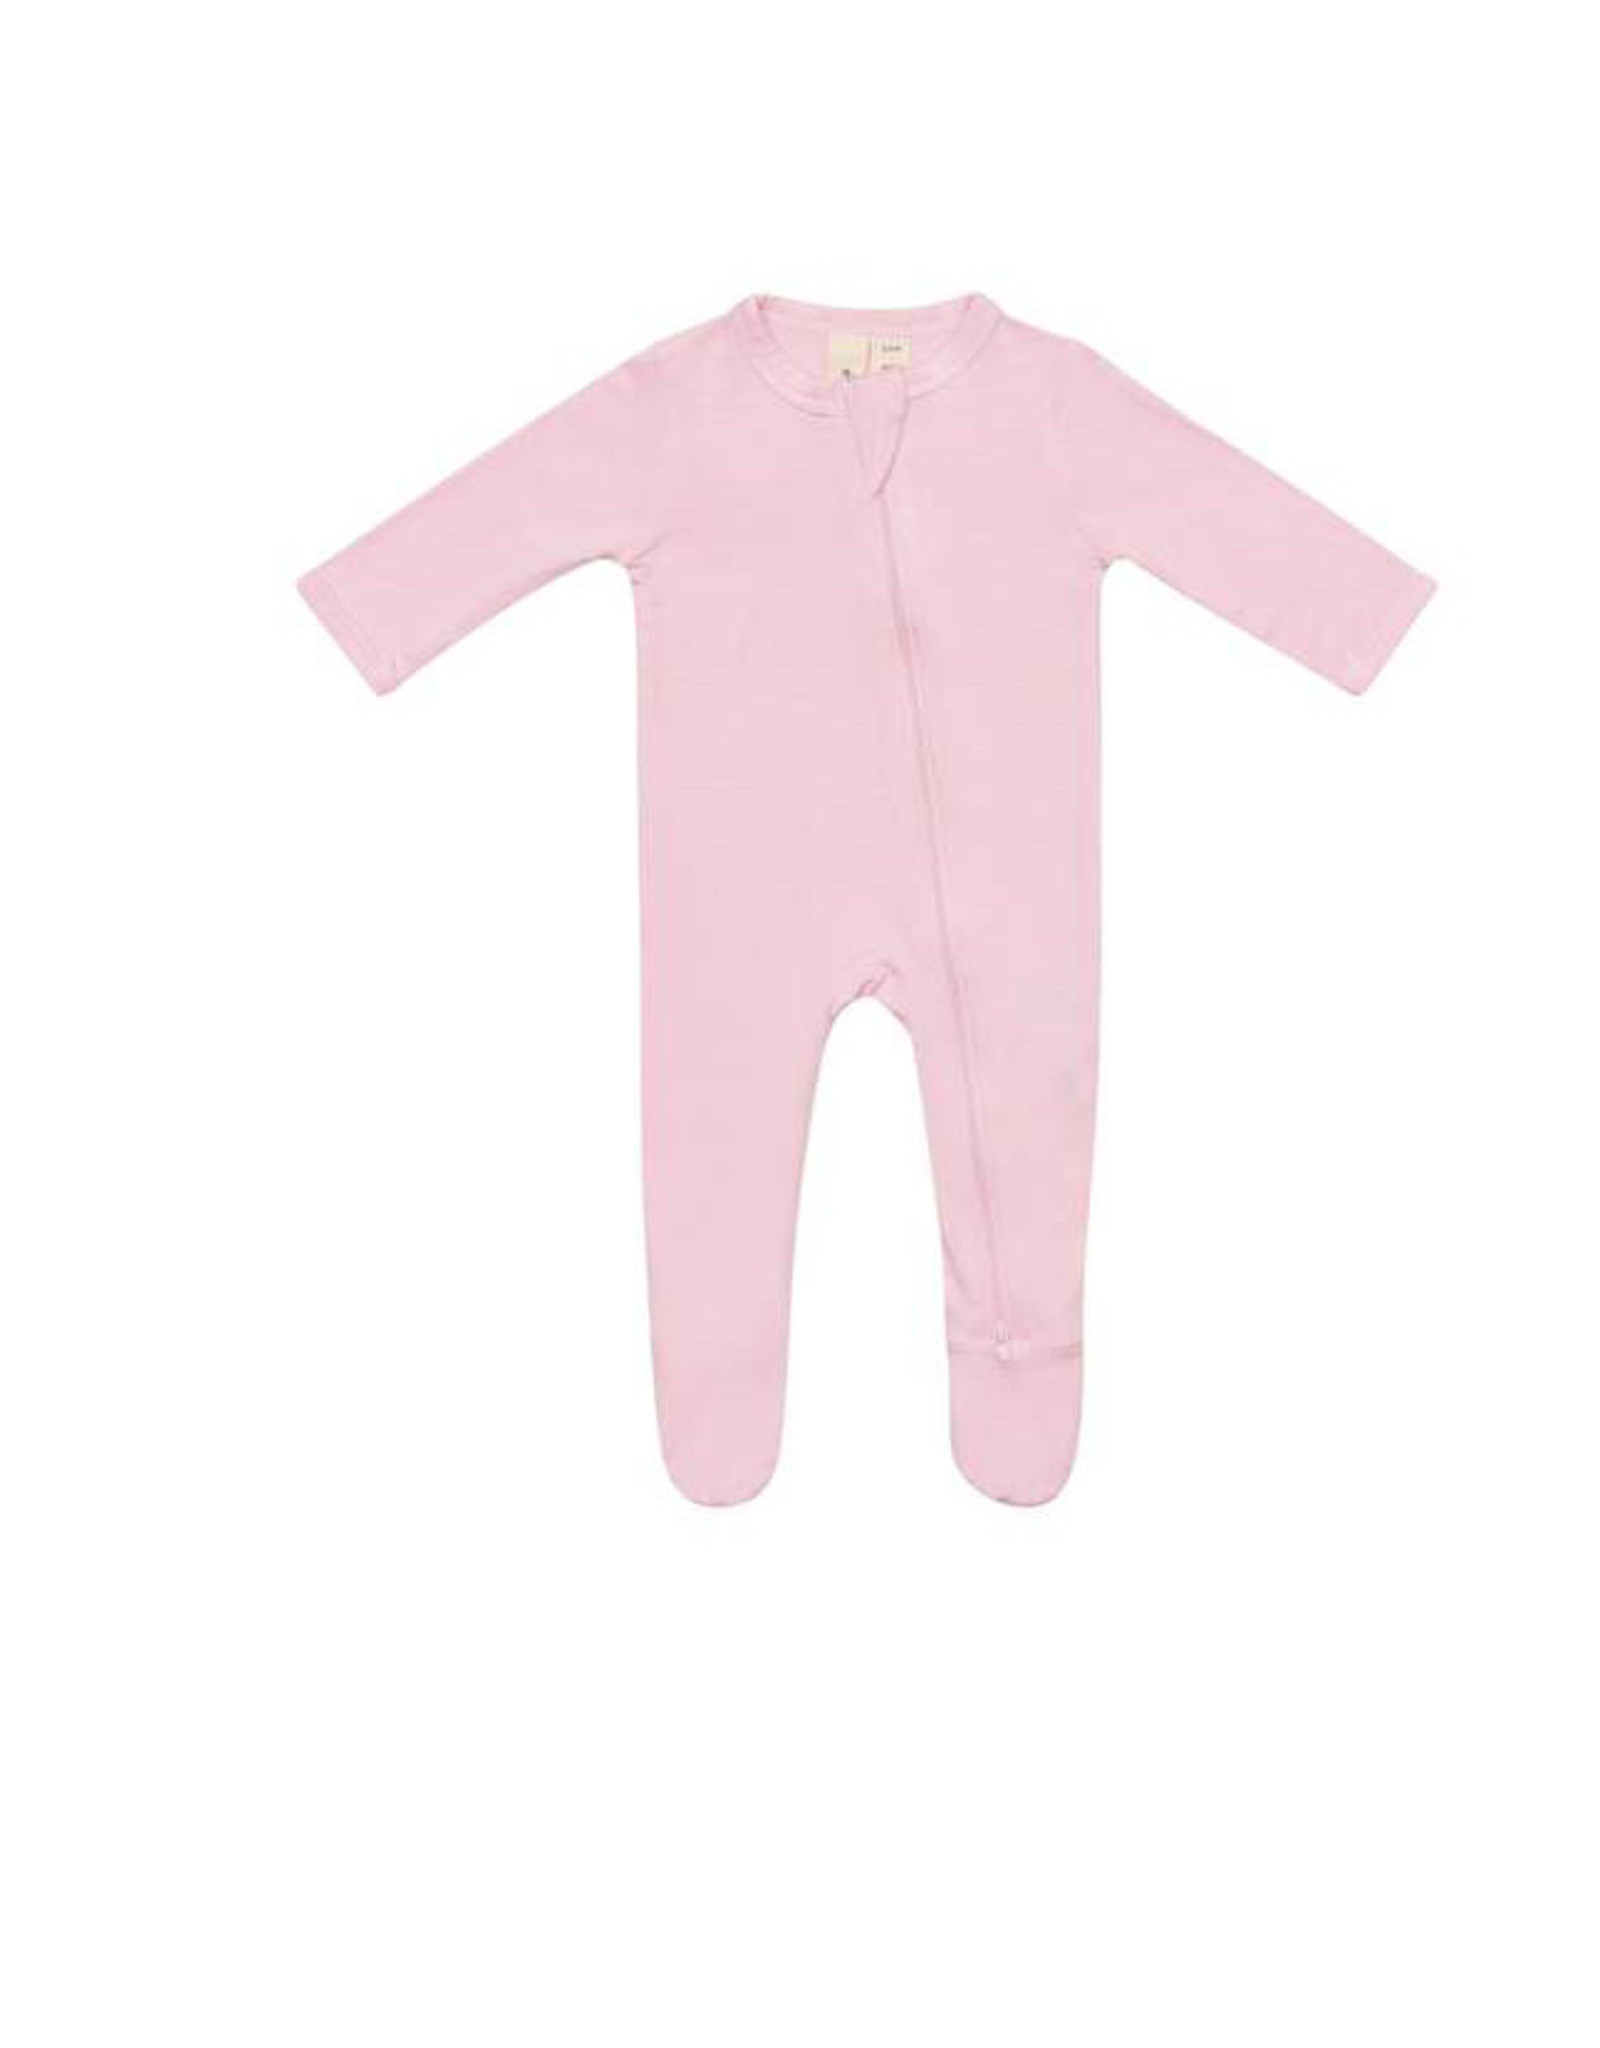 Kyte baby Zippered Footie in Peony